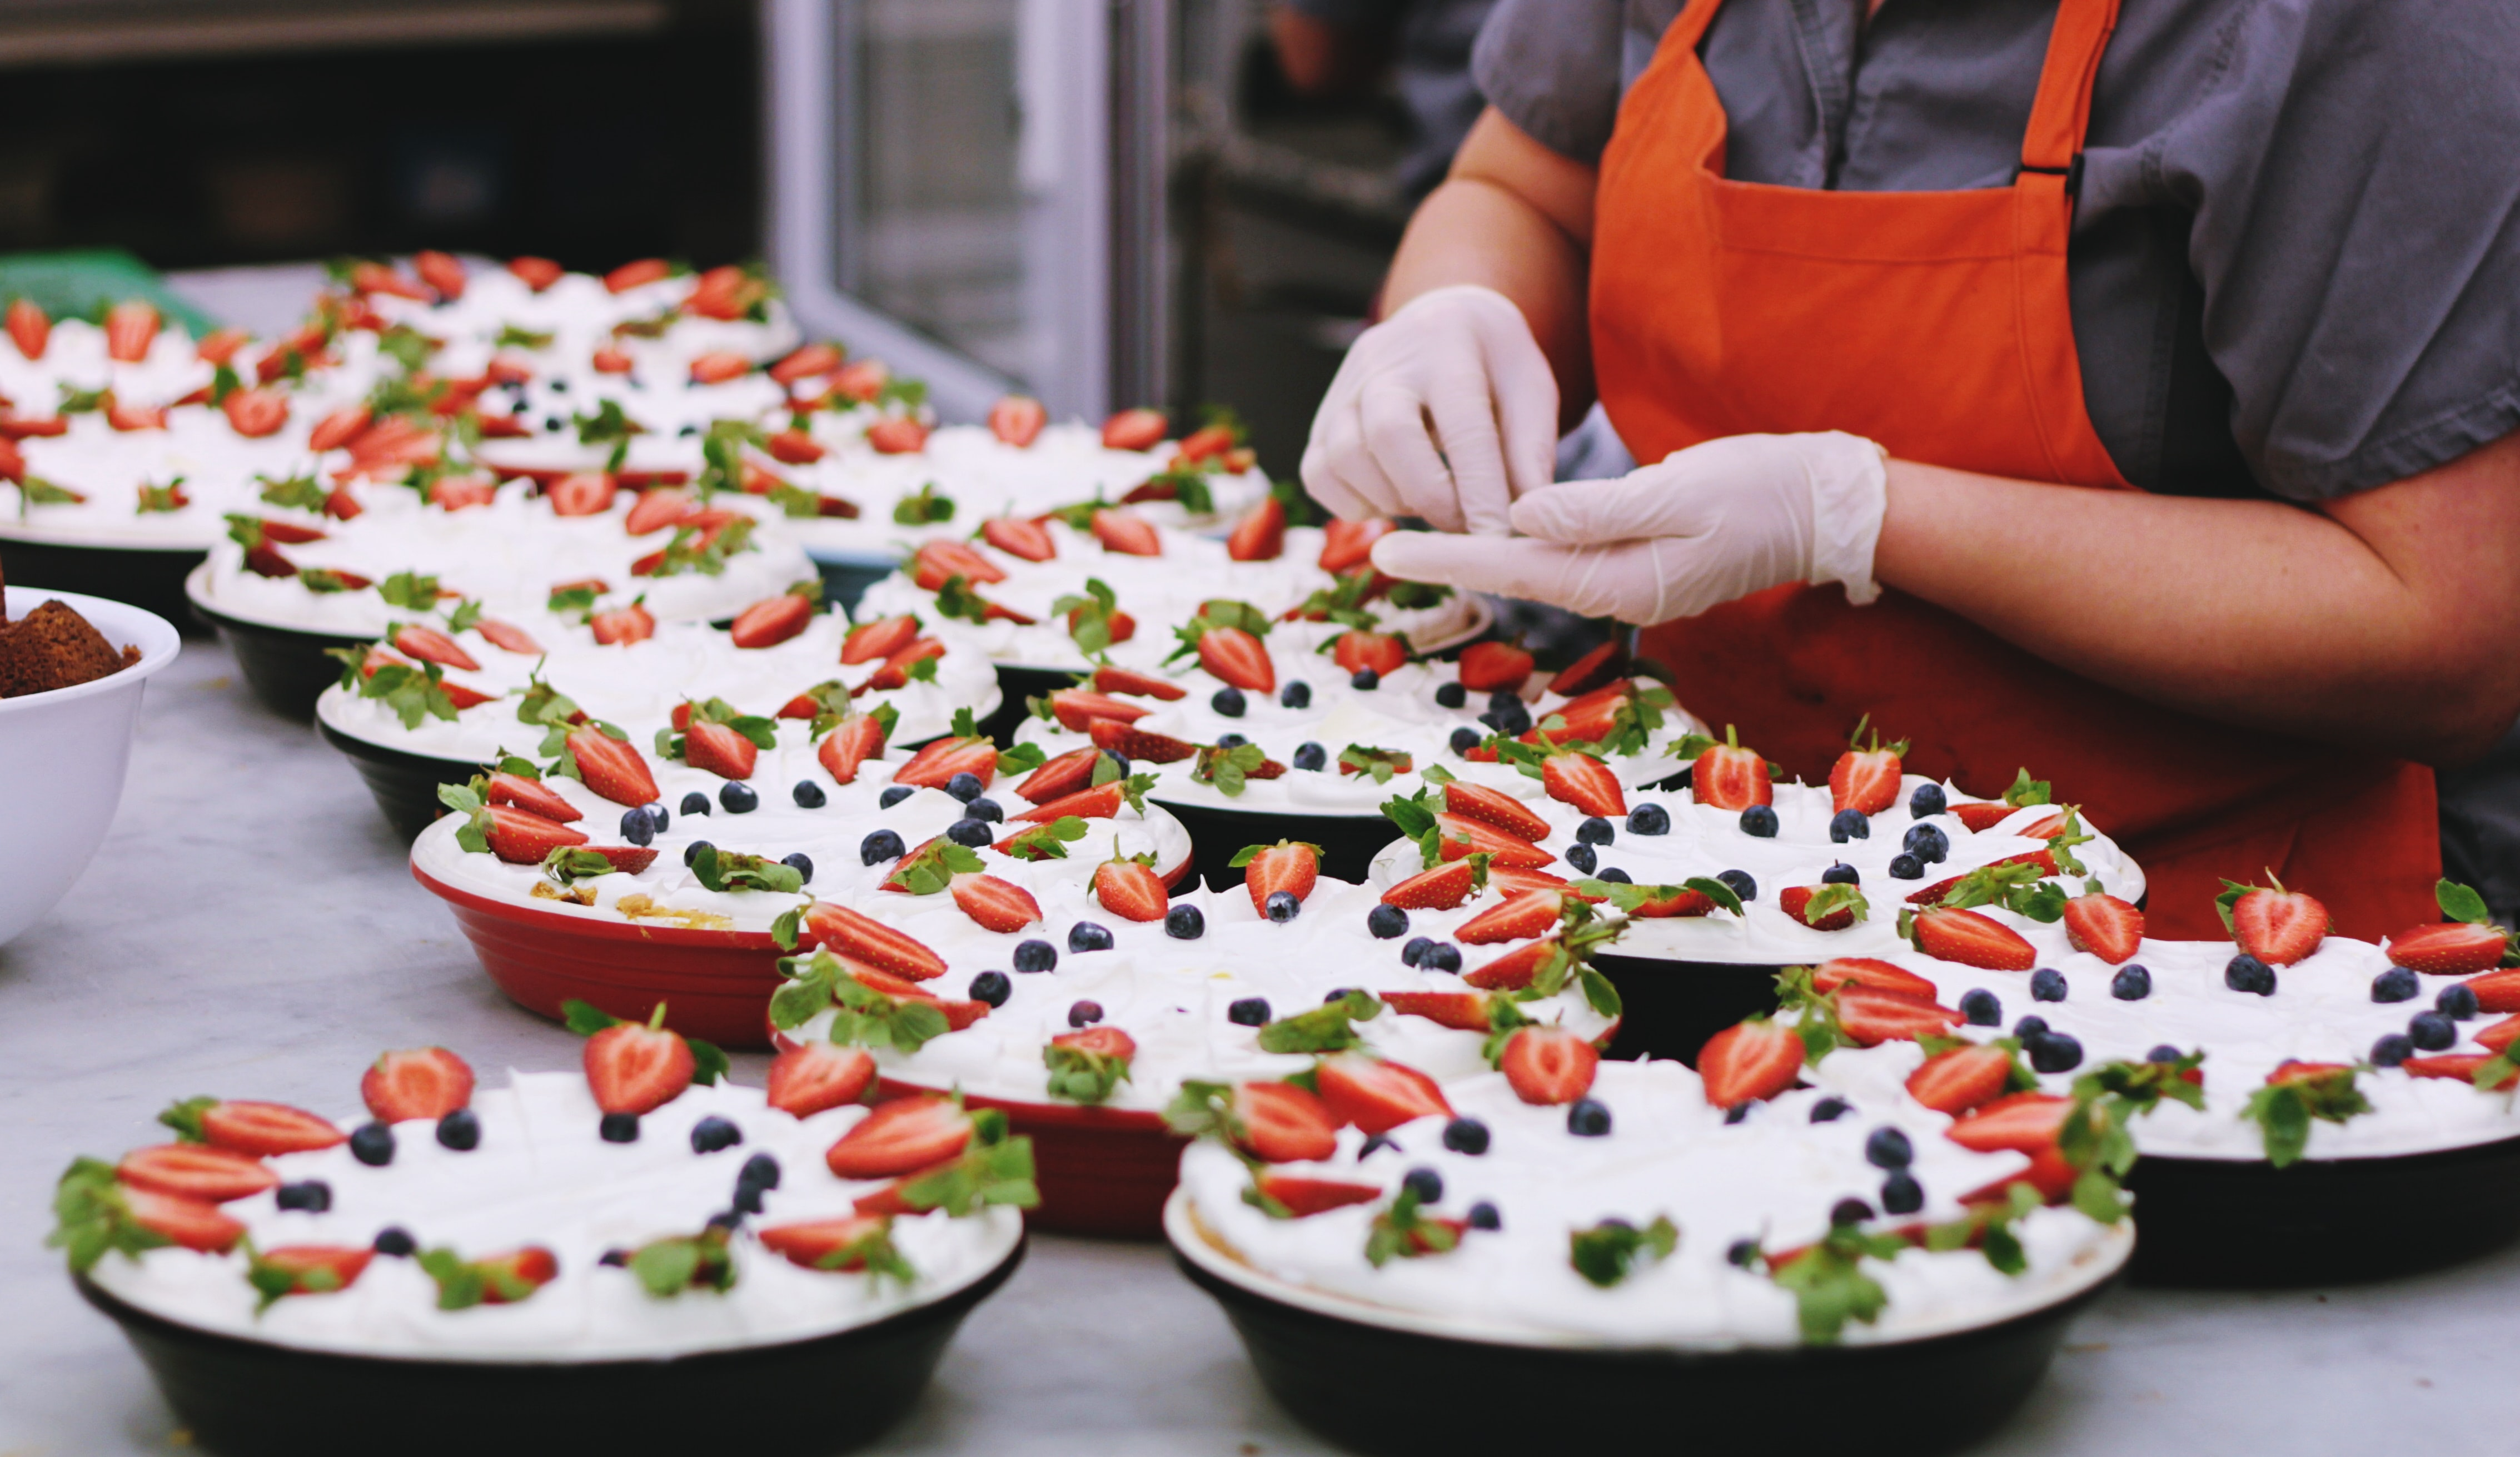 Baker prepares fresh cheesecakes topped with fruits